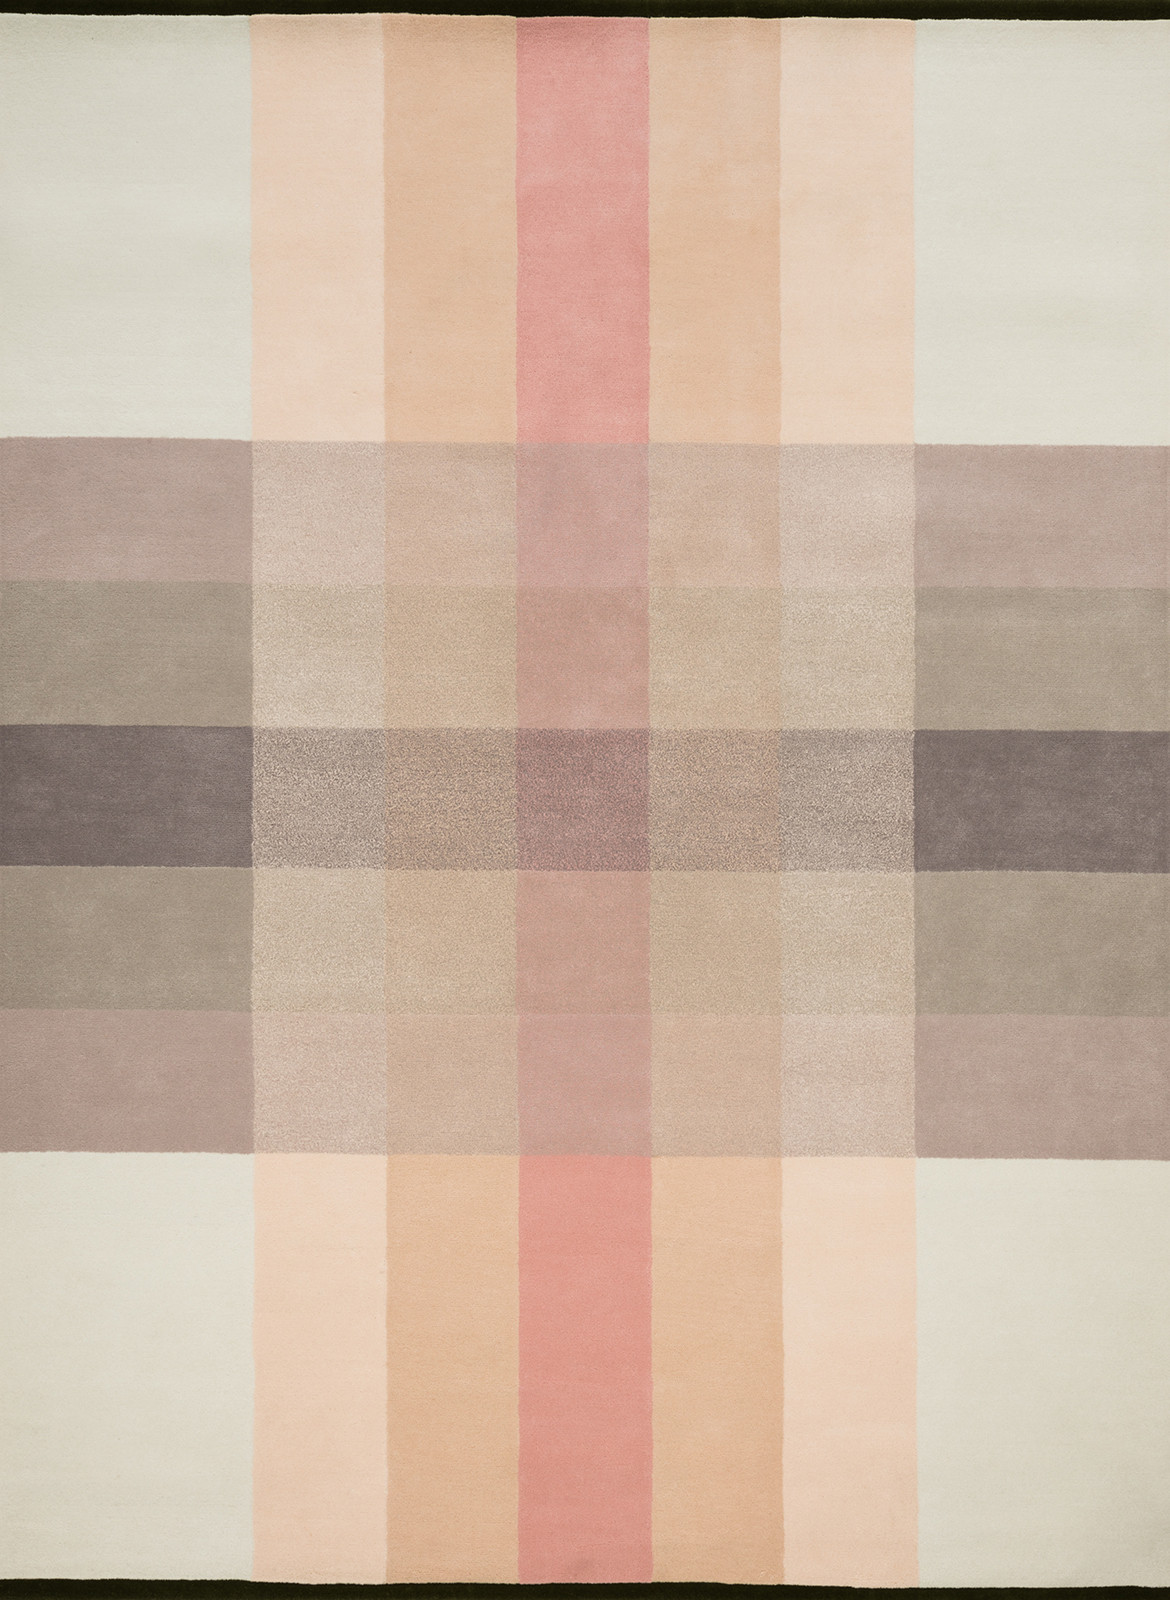 Designer Rugs Bernabeifreeman CC Richard Whitman crossing colours